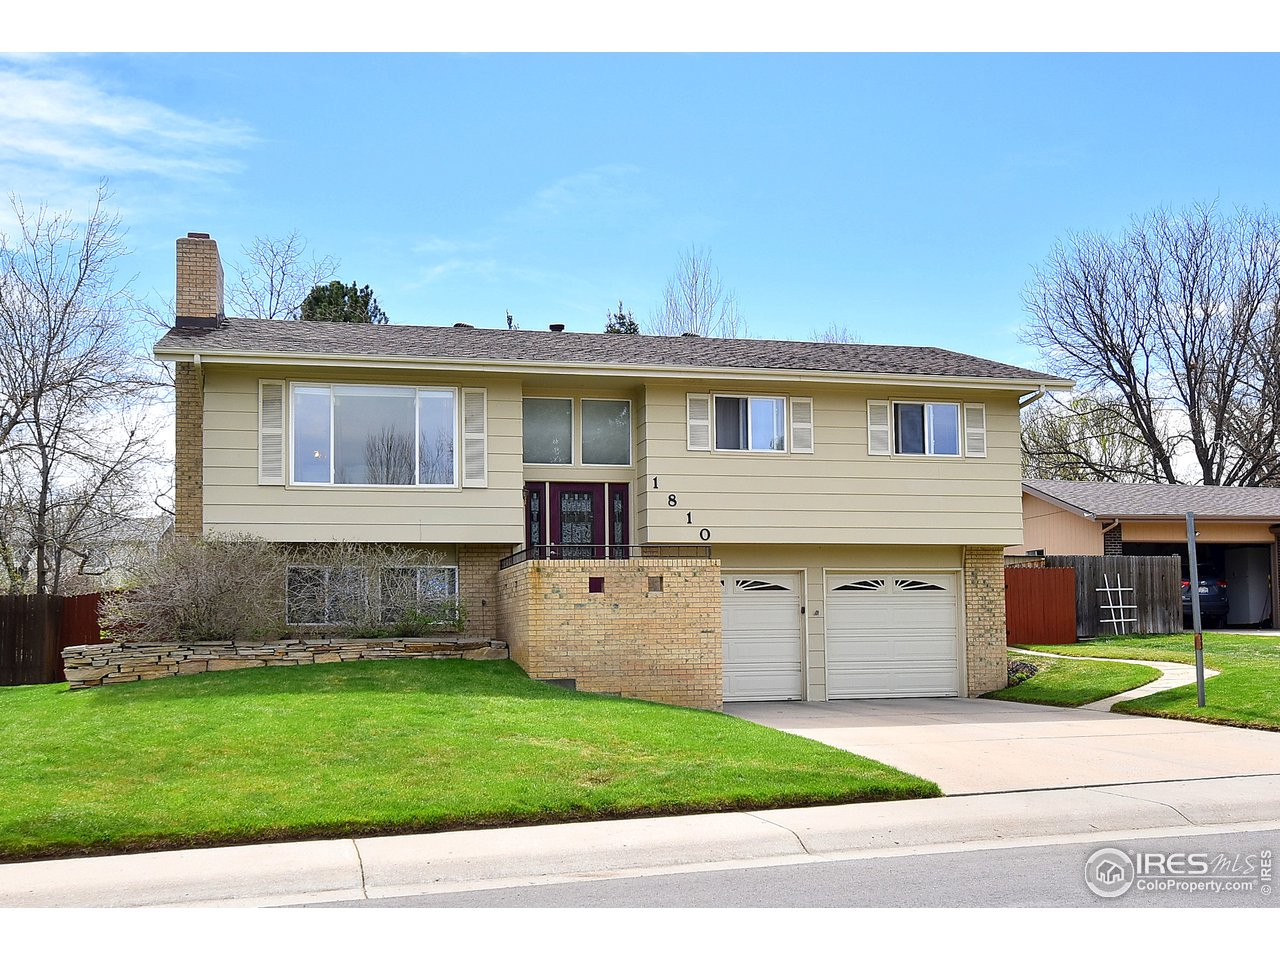 1810 27th Ave, Greeley CO 80634